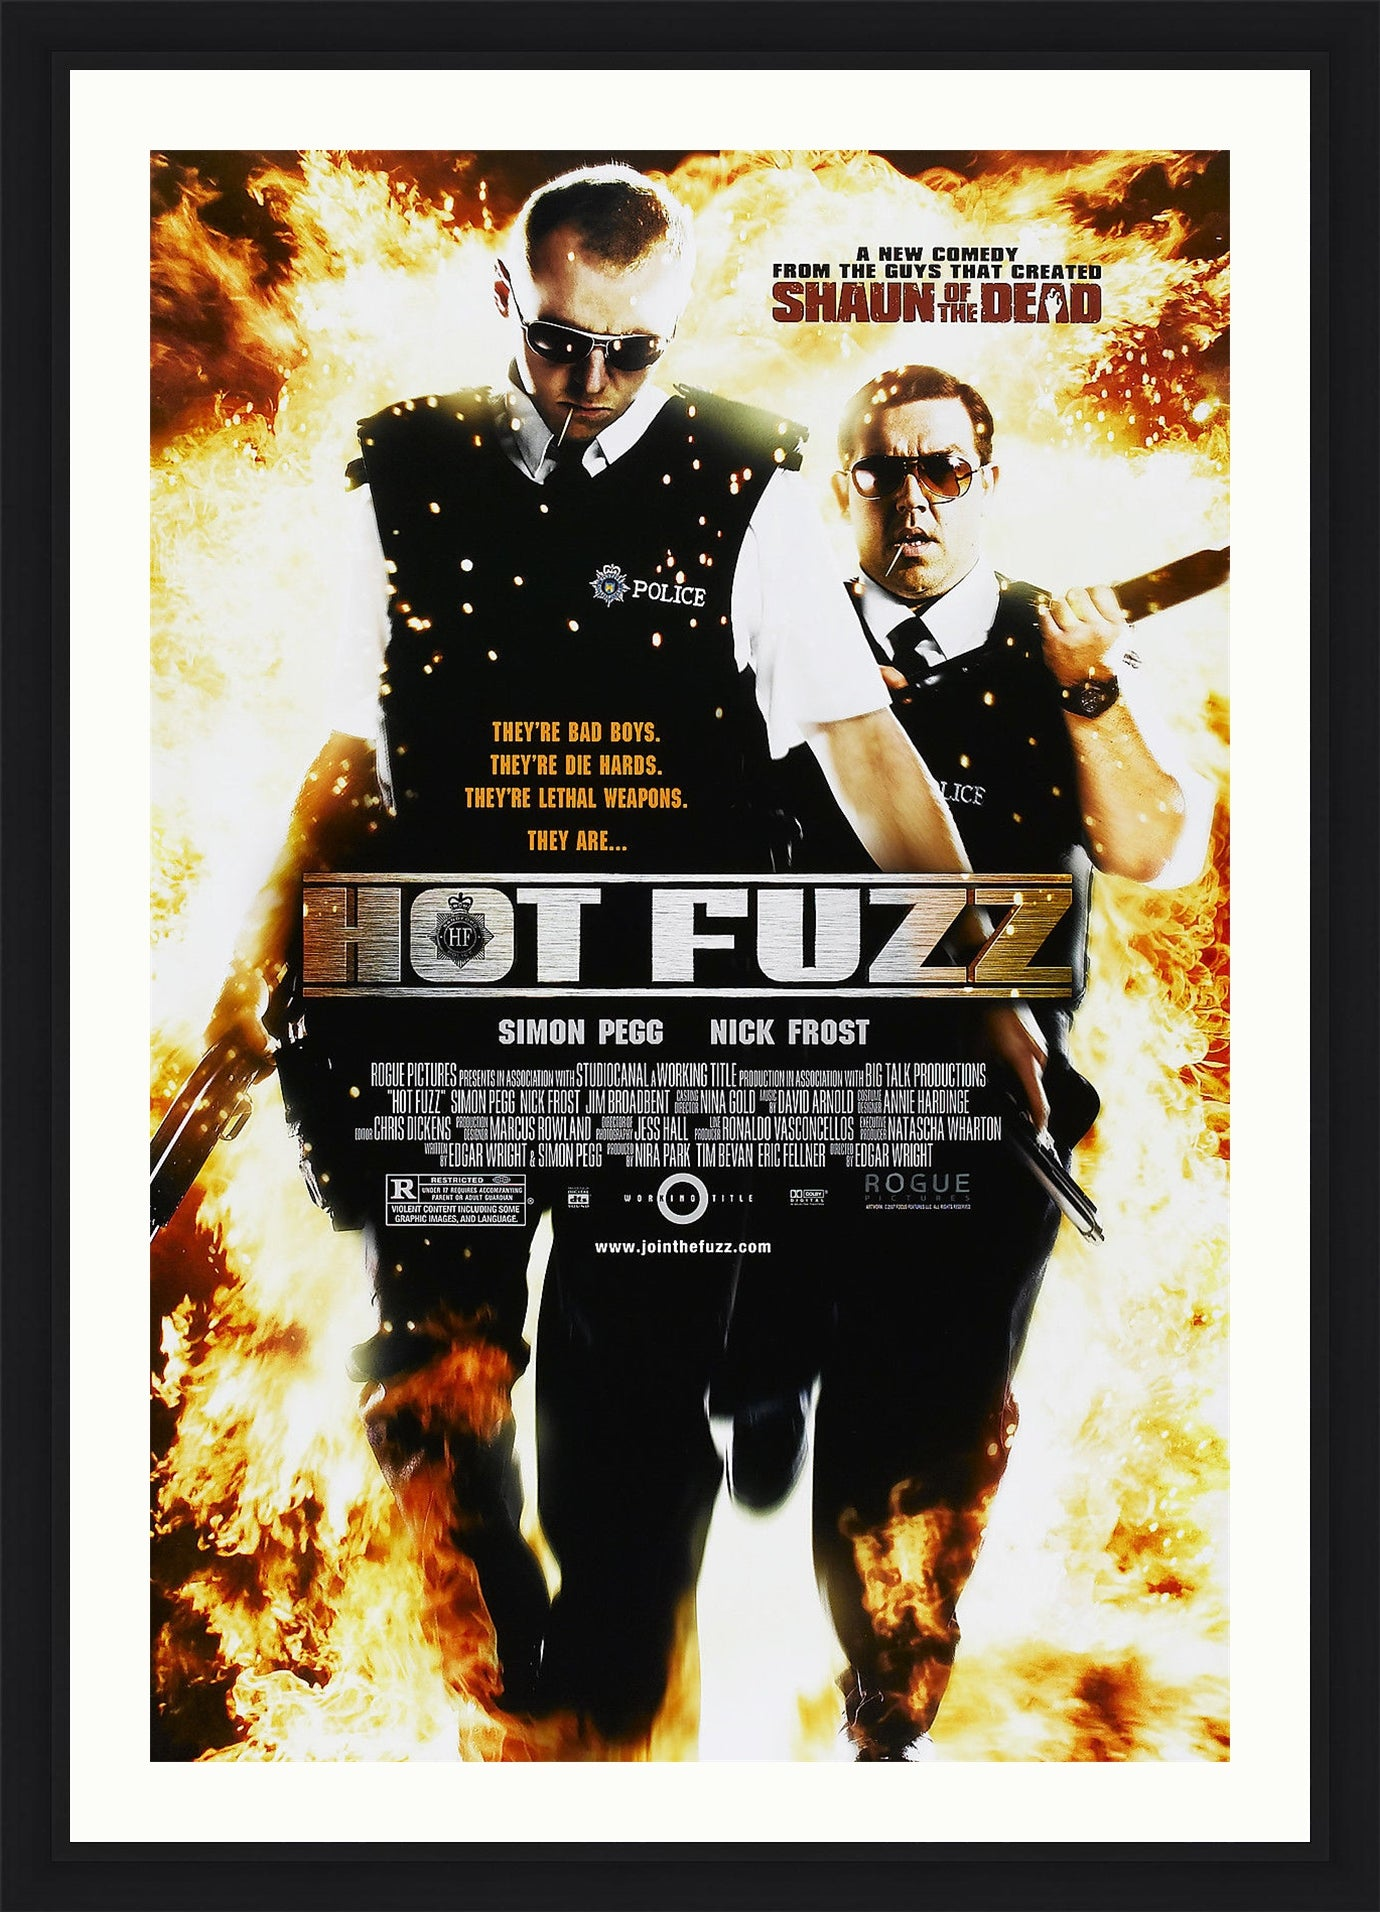 An original movie poster for the Edgar Wright movie Hot Fuzz